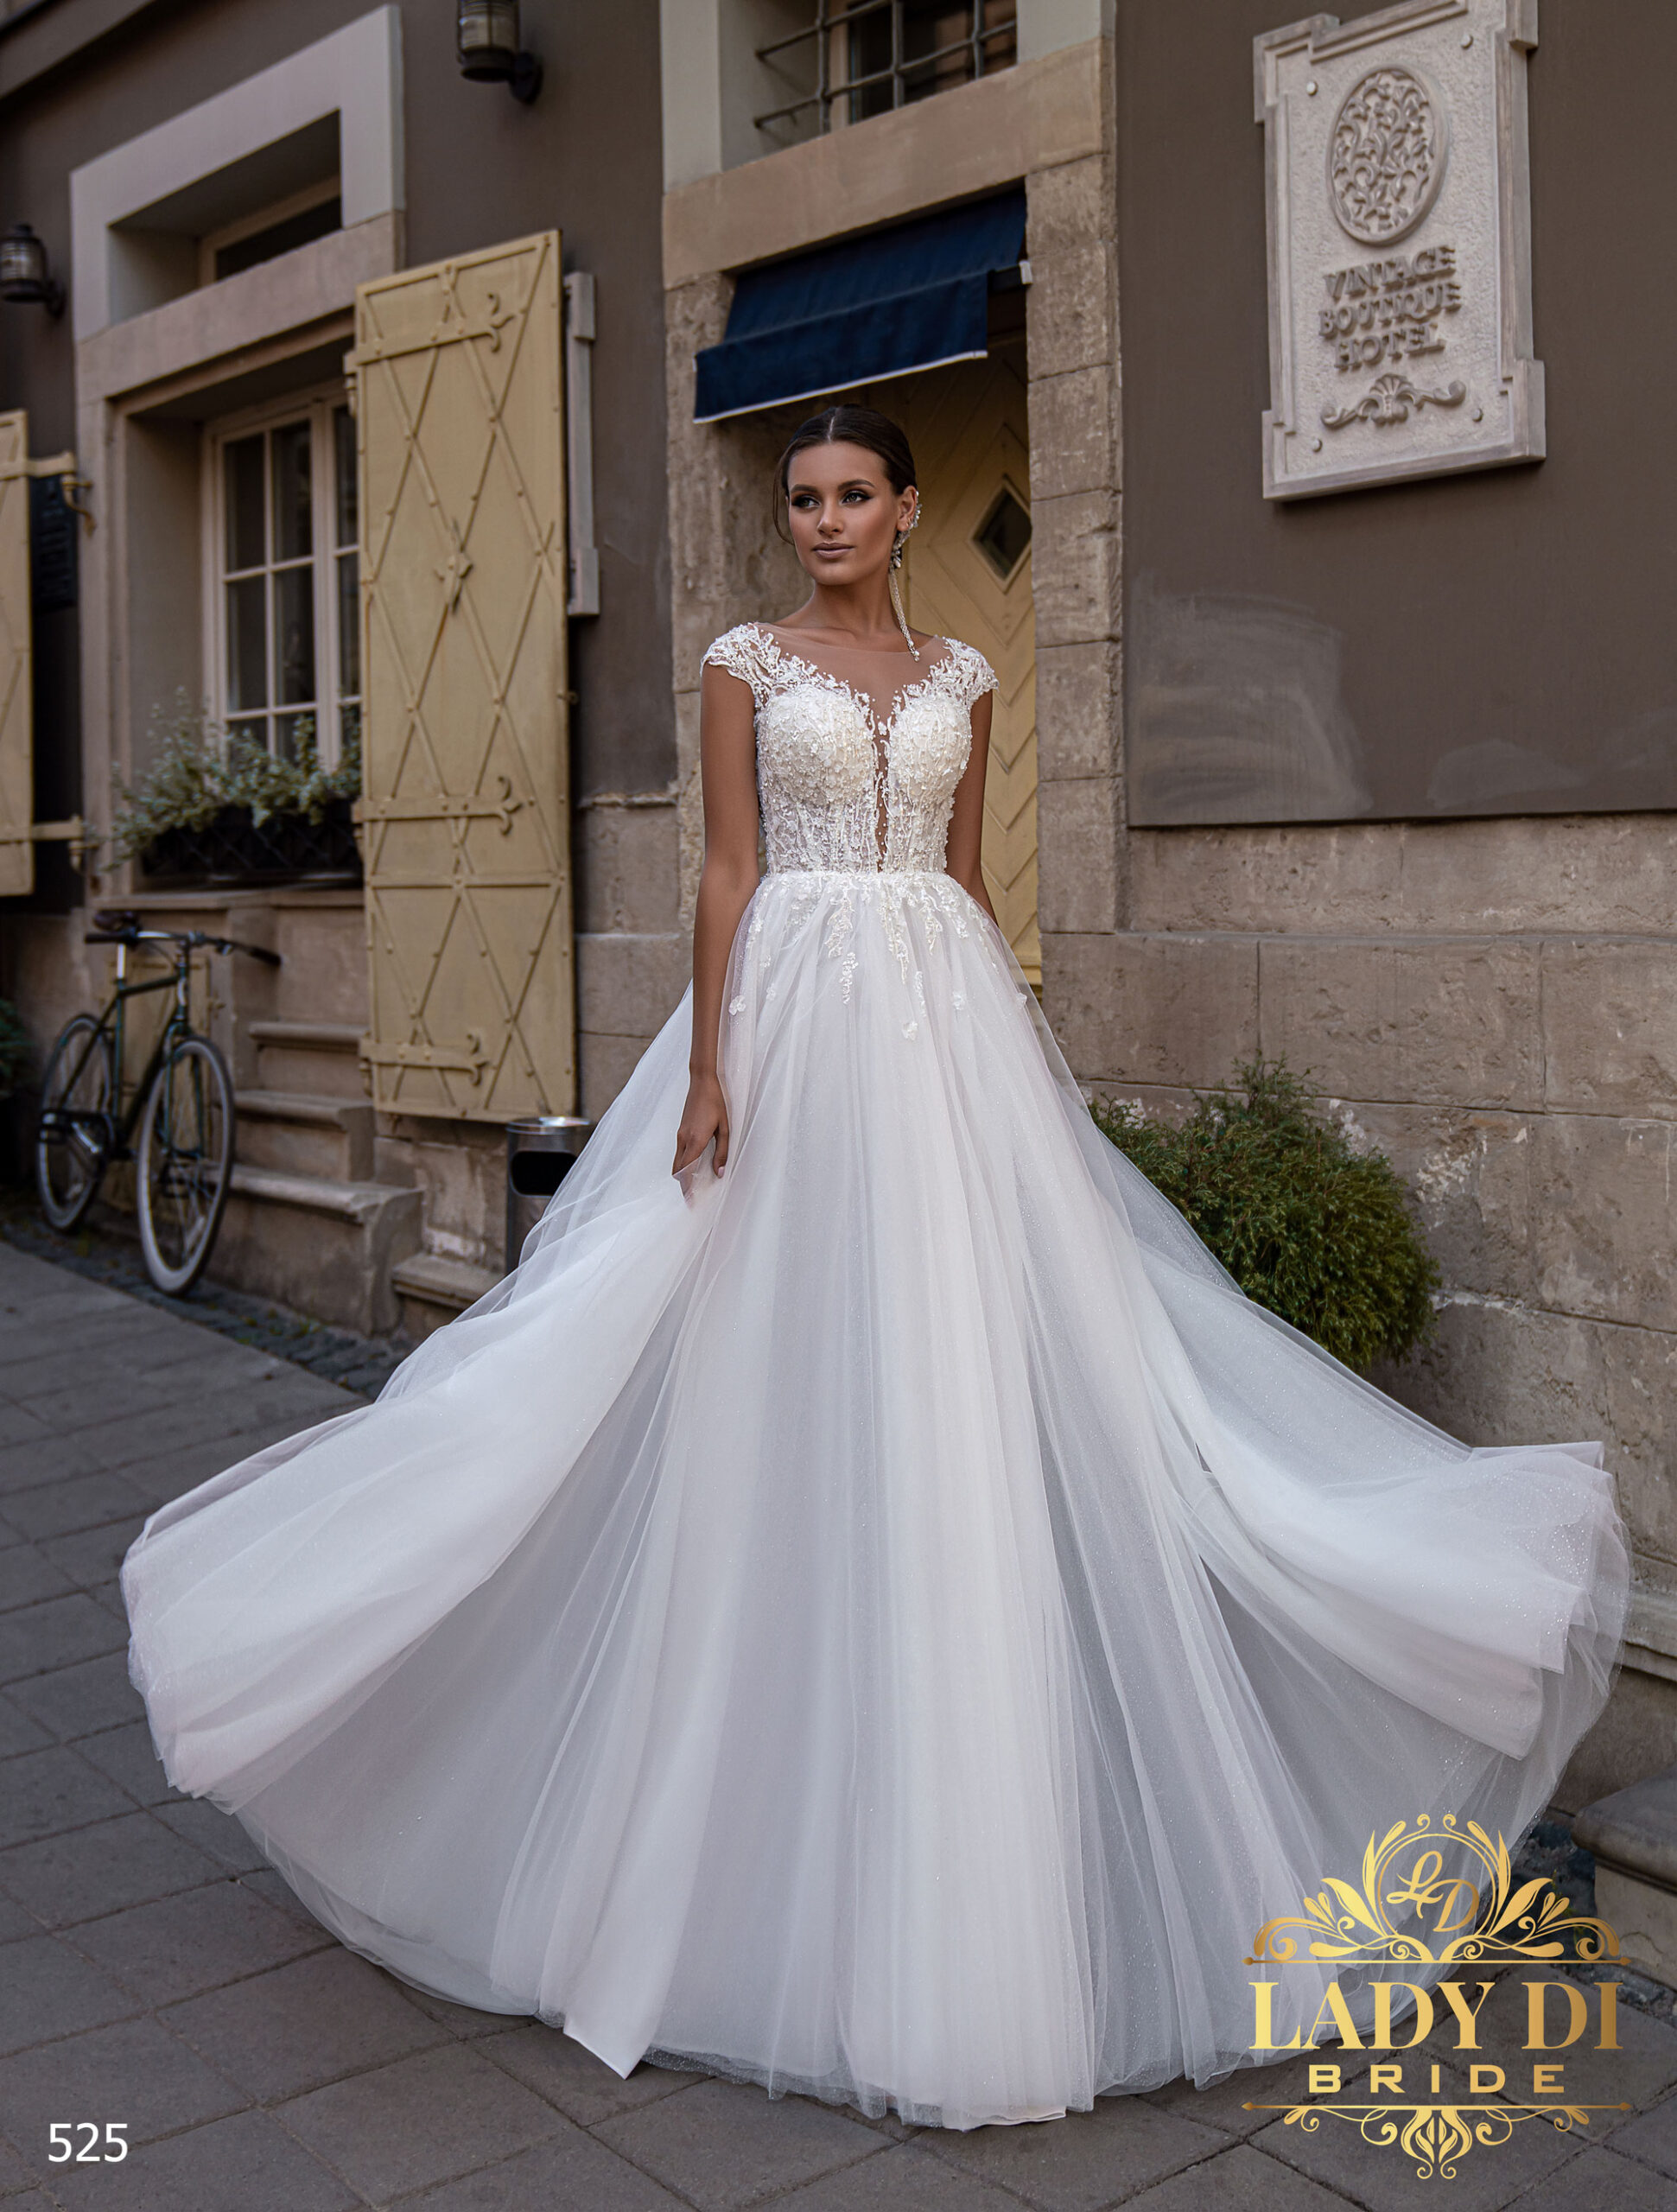 Wedding-dress-Lady-Di-525-1